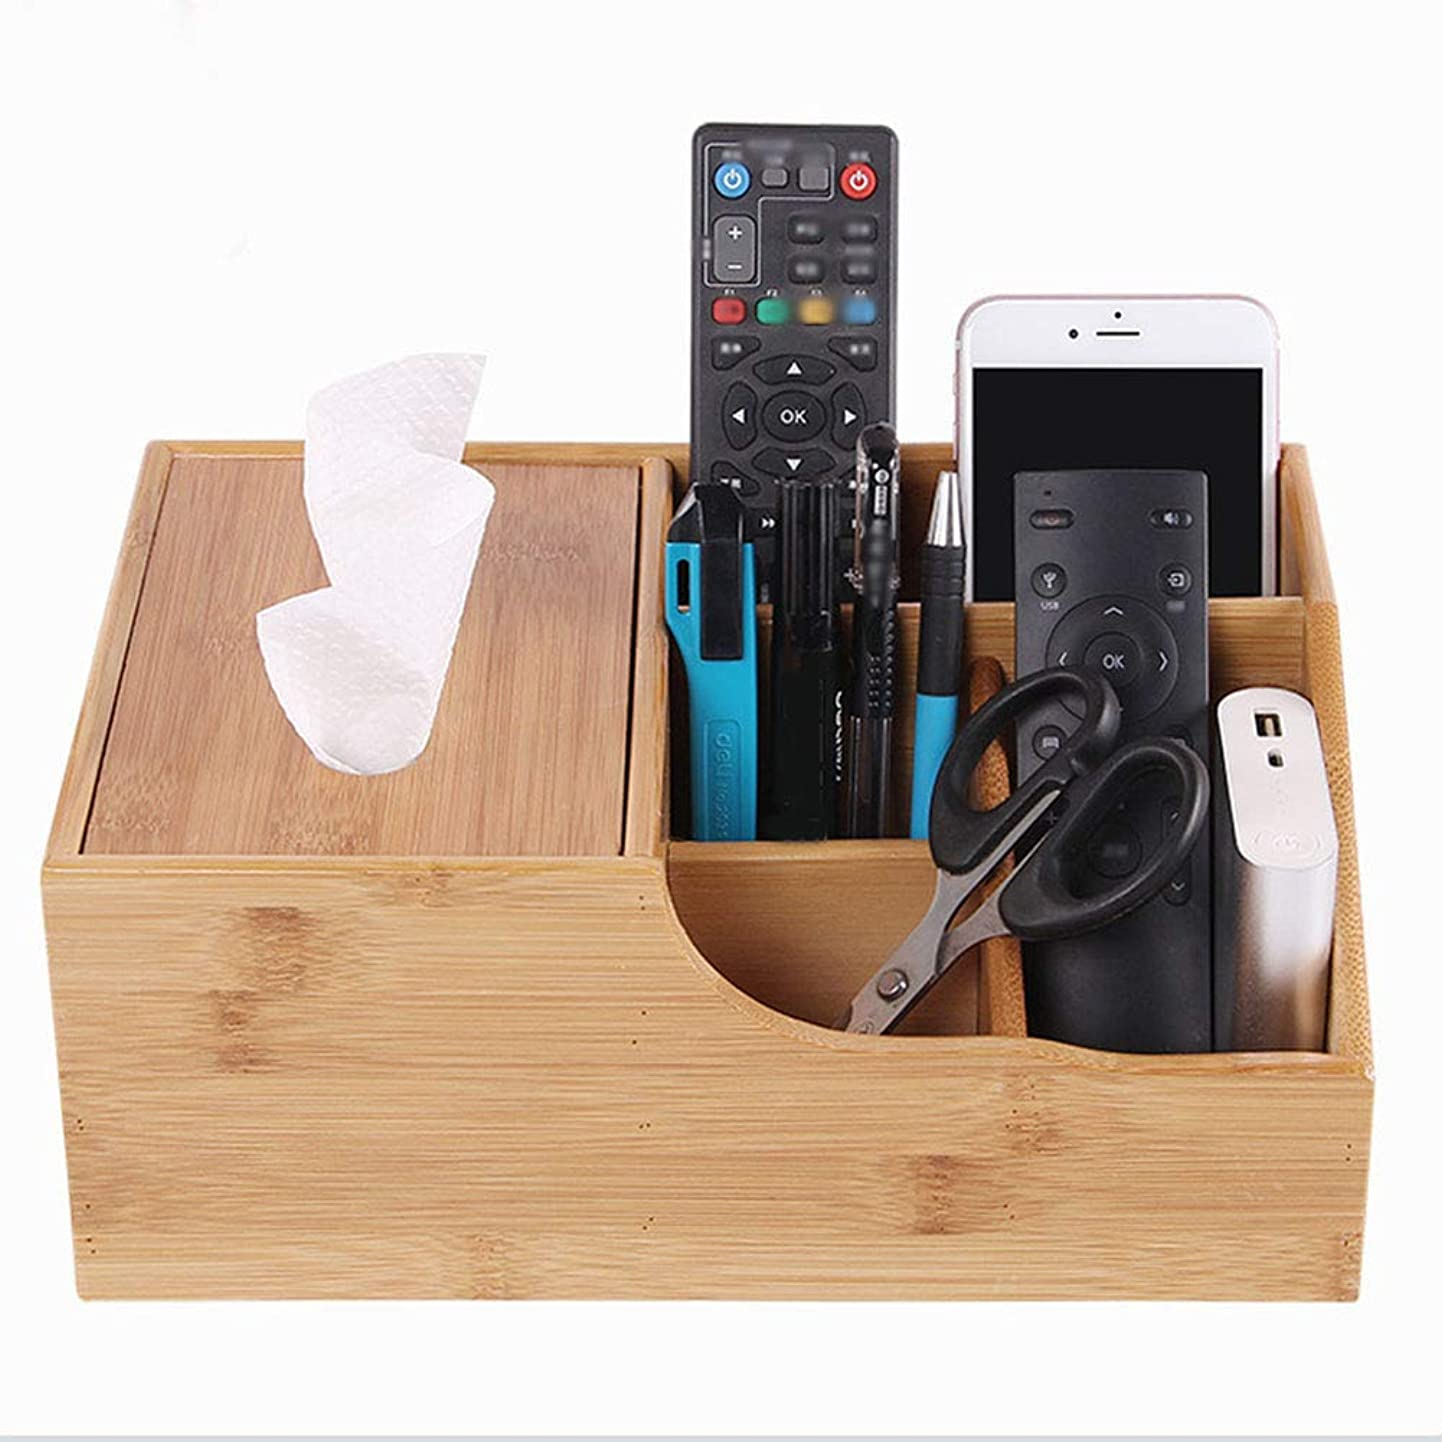 Wooden Remote Control Holder Caddy Box Desktop Organizer Stand Container Compartment Tissue Box Storage Case for Desk, Office Supplies, Home, End Table(Four Grid) qstsnazgson7